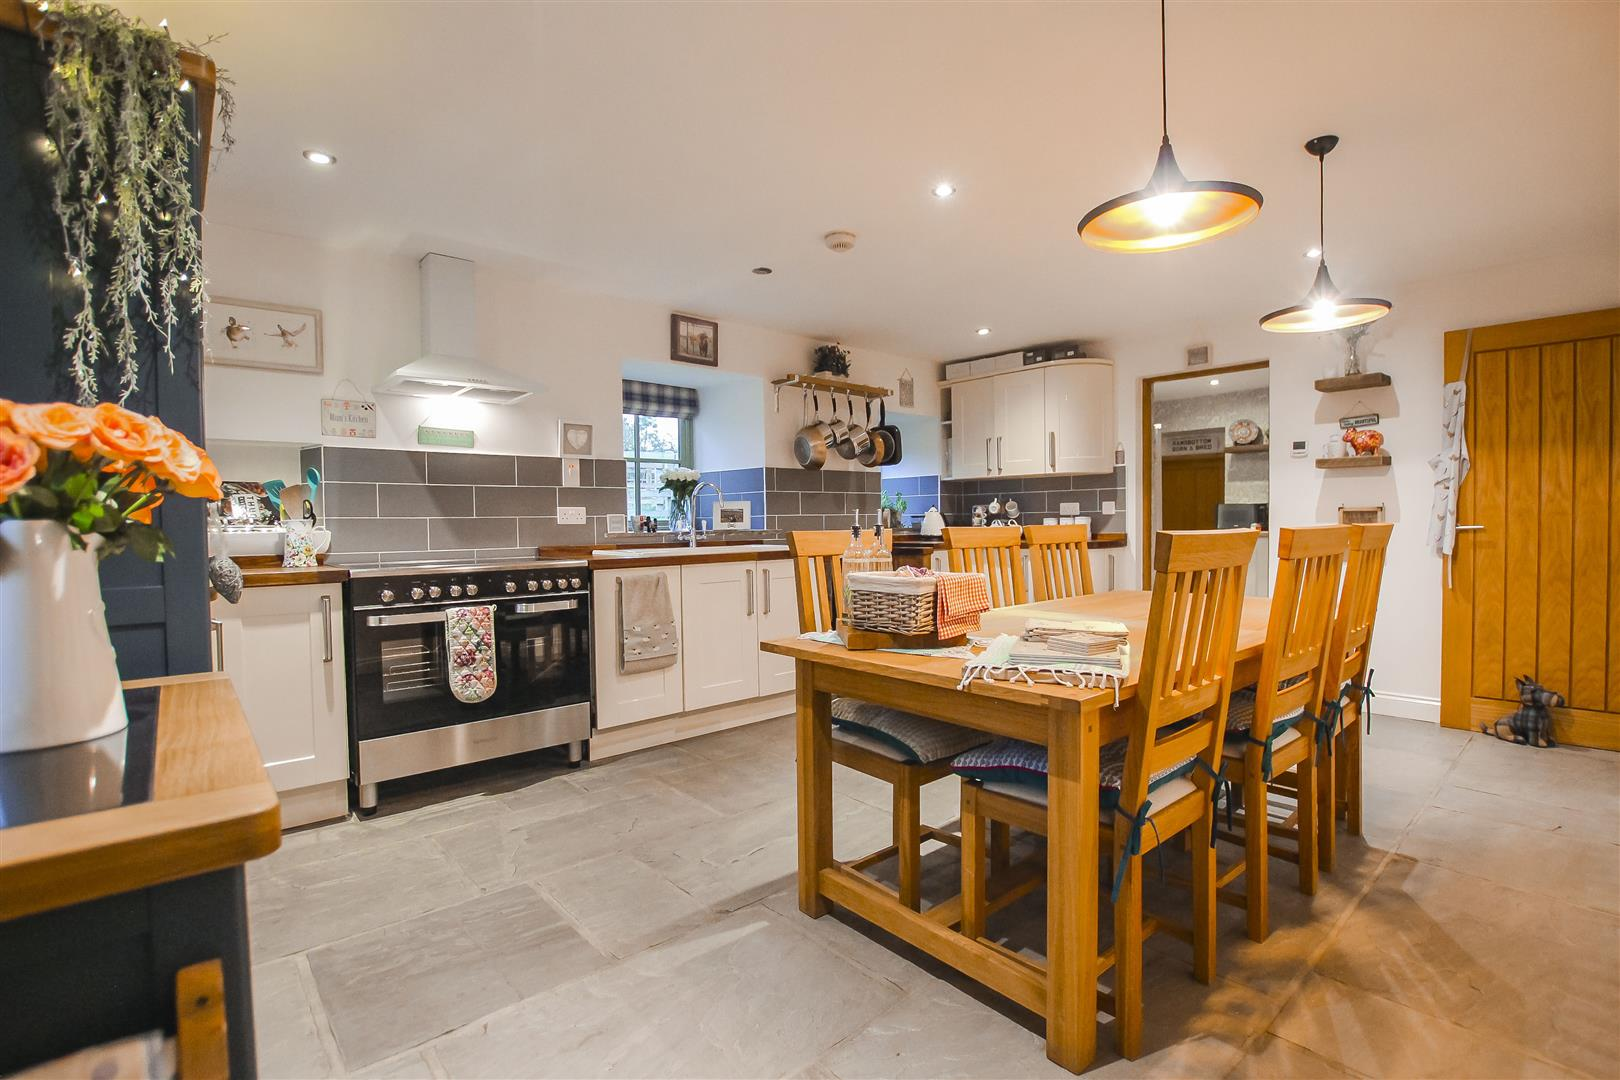 4 Bedroom Barn Conversion For Sale - Kitchen